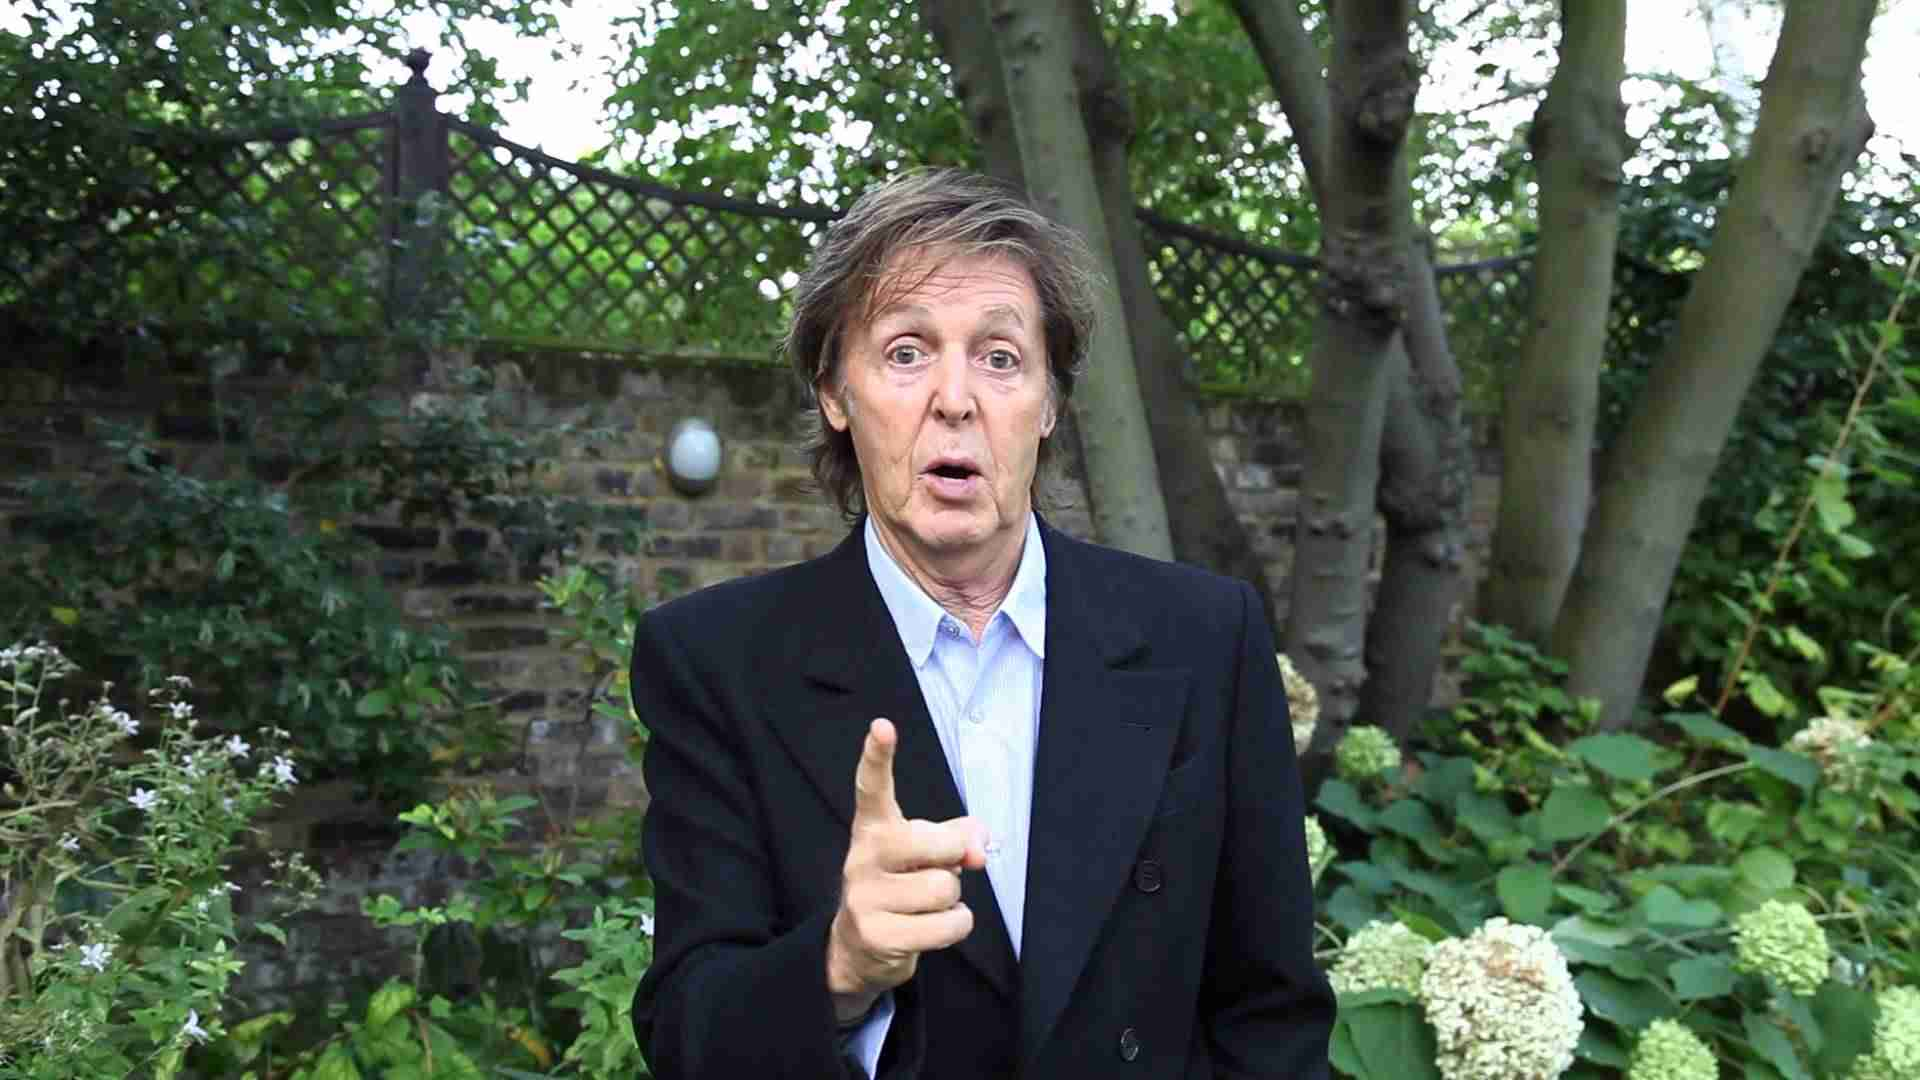 An Urgent Call to Action from Paul McCartney - YouTube